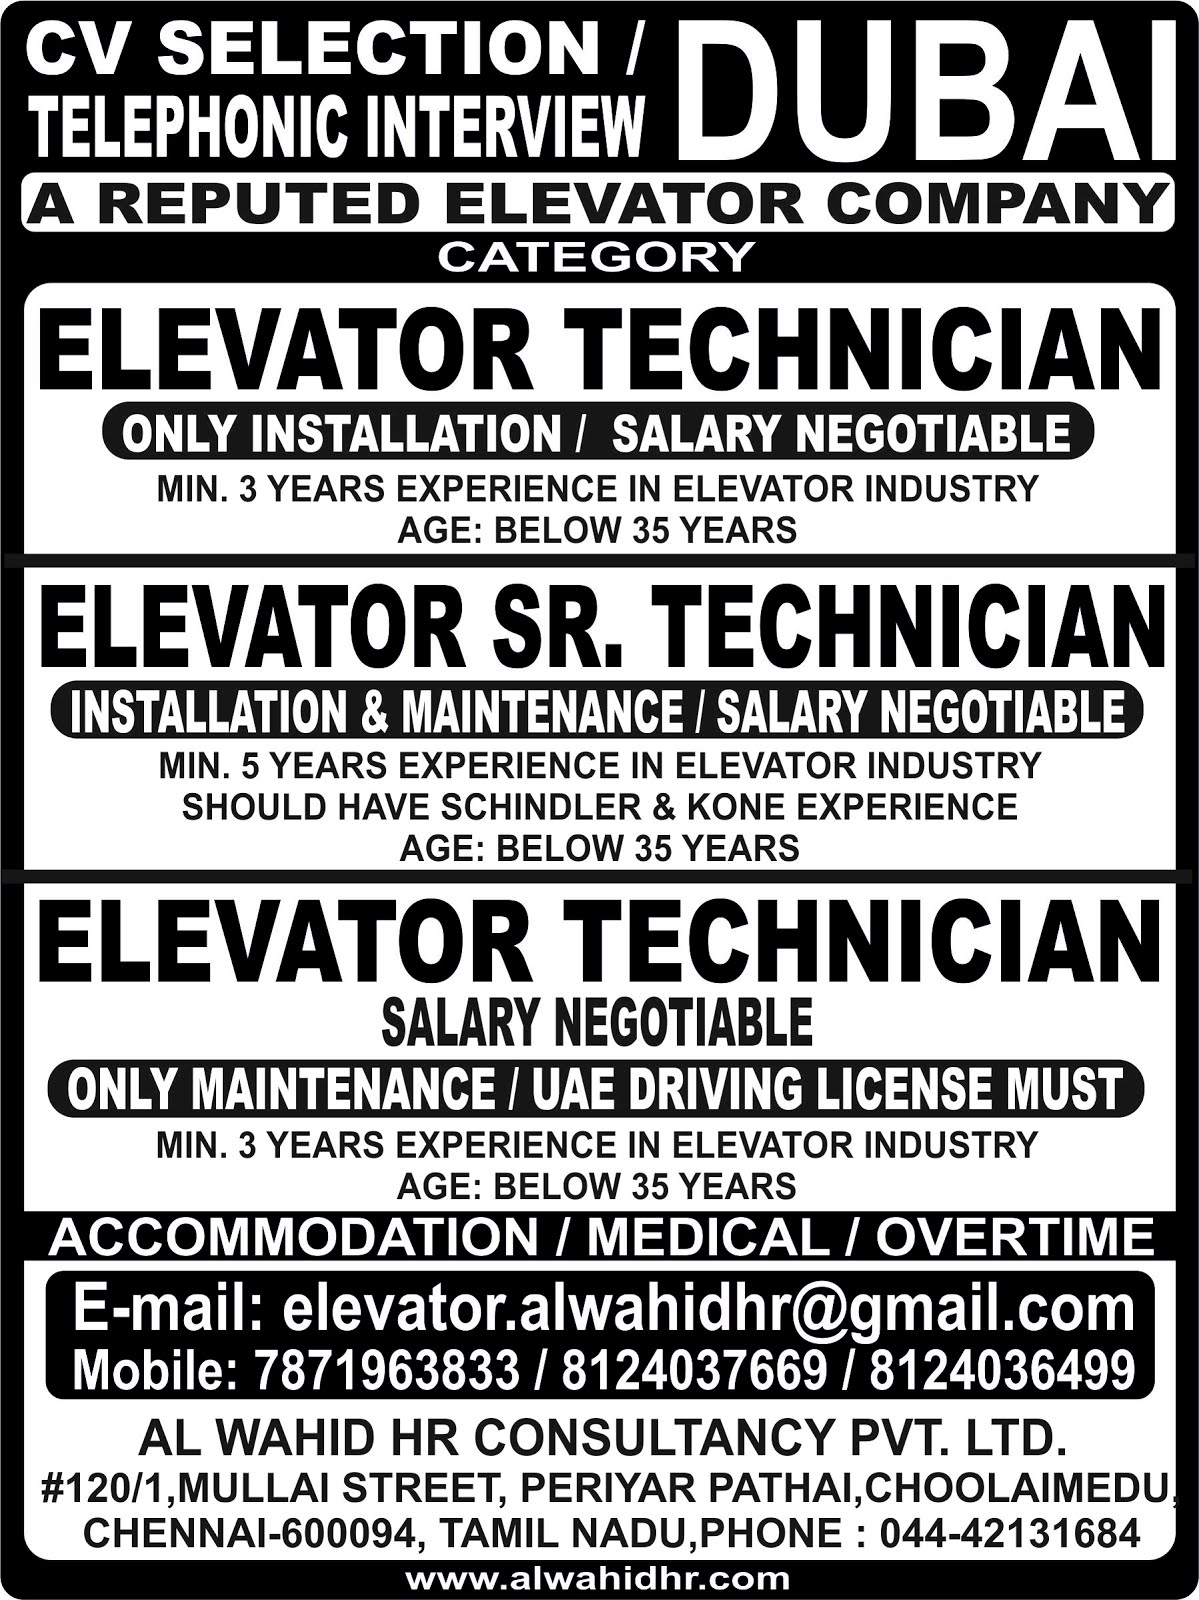 AL WAHID HR CONSULTANCY PVT  LTD : 2018